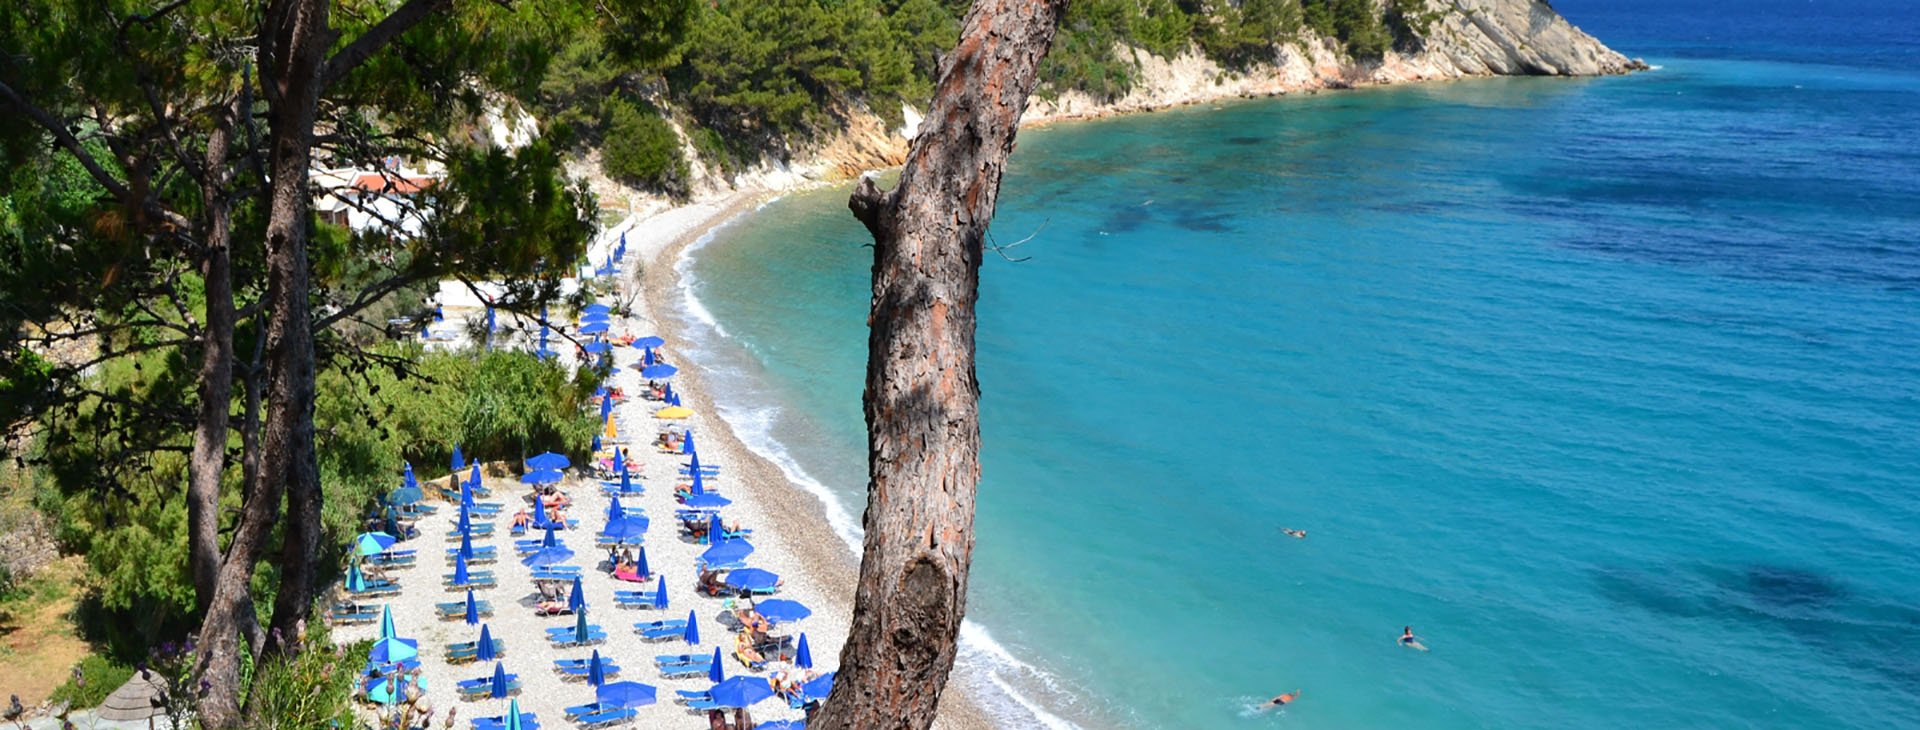 Lemonakia beach, Samos island